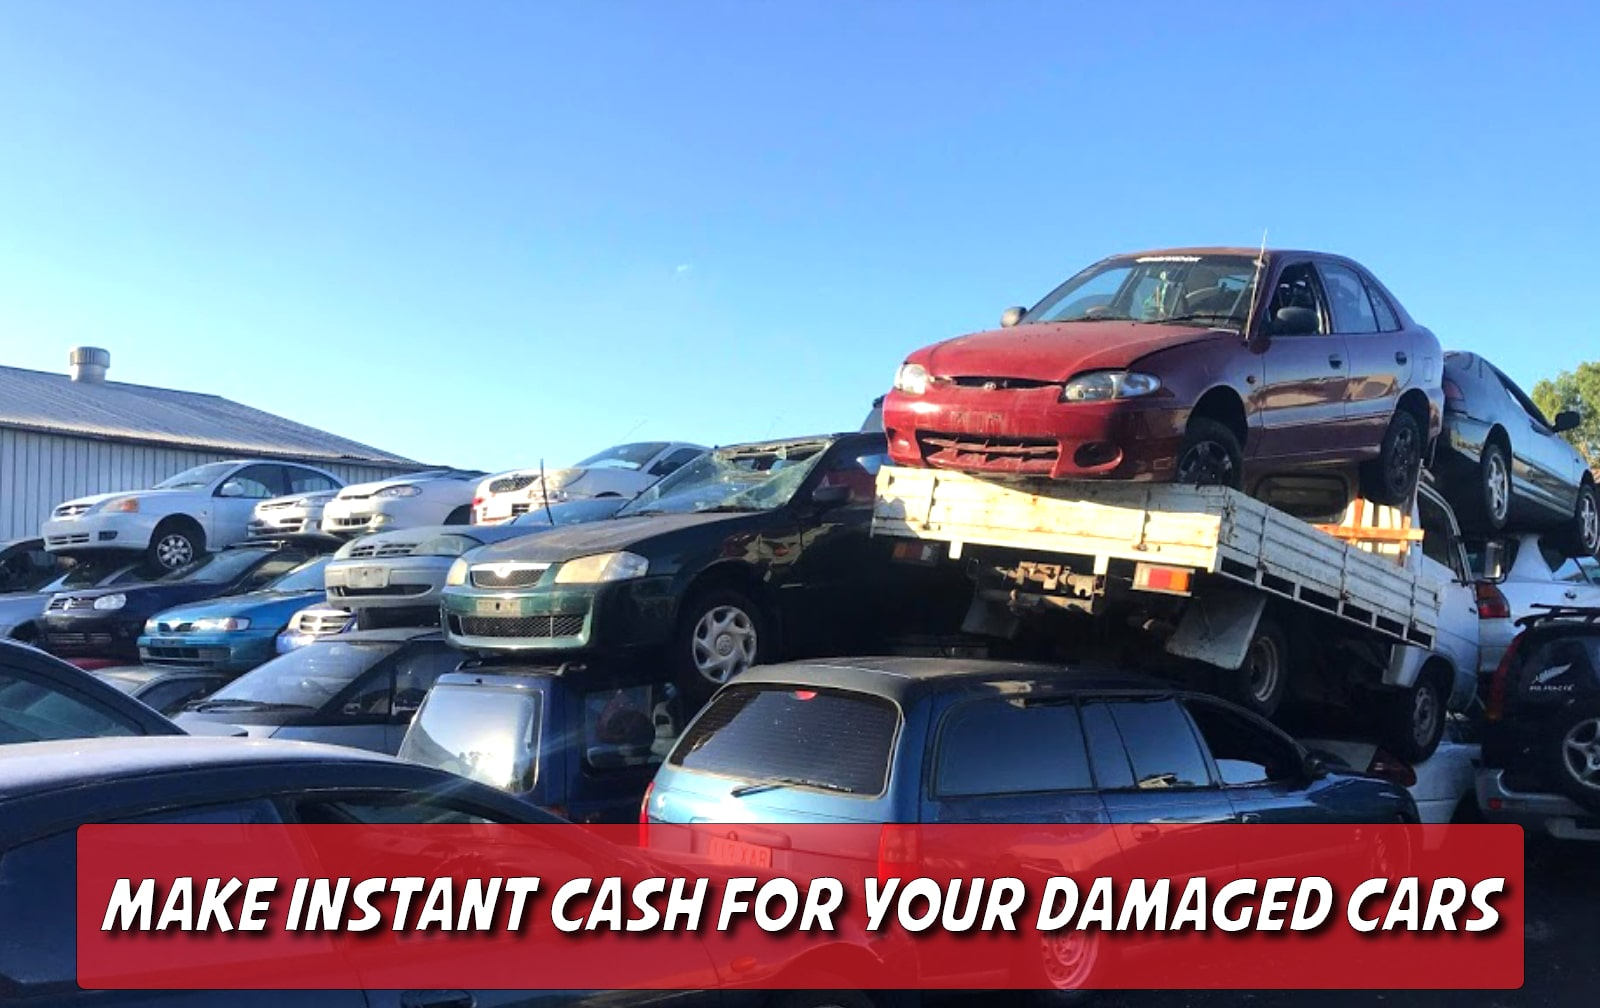 How to make instant cash for your damaged cars